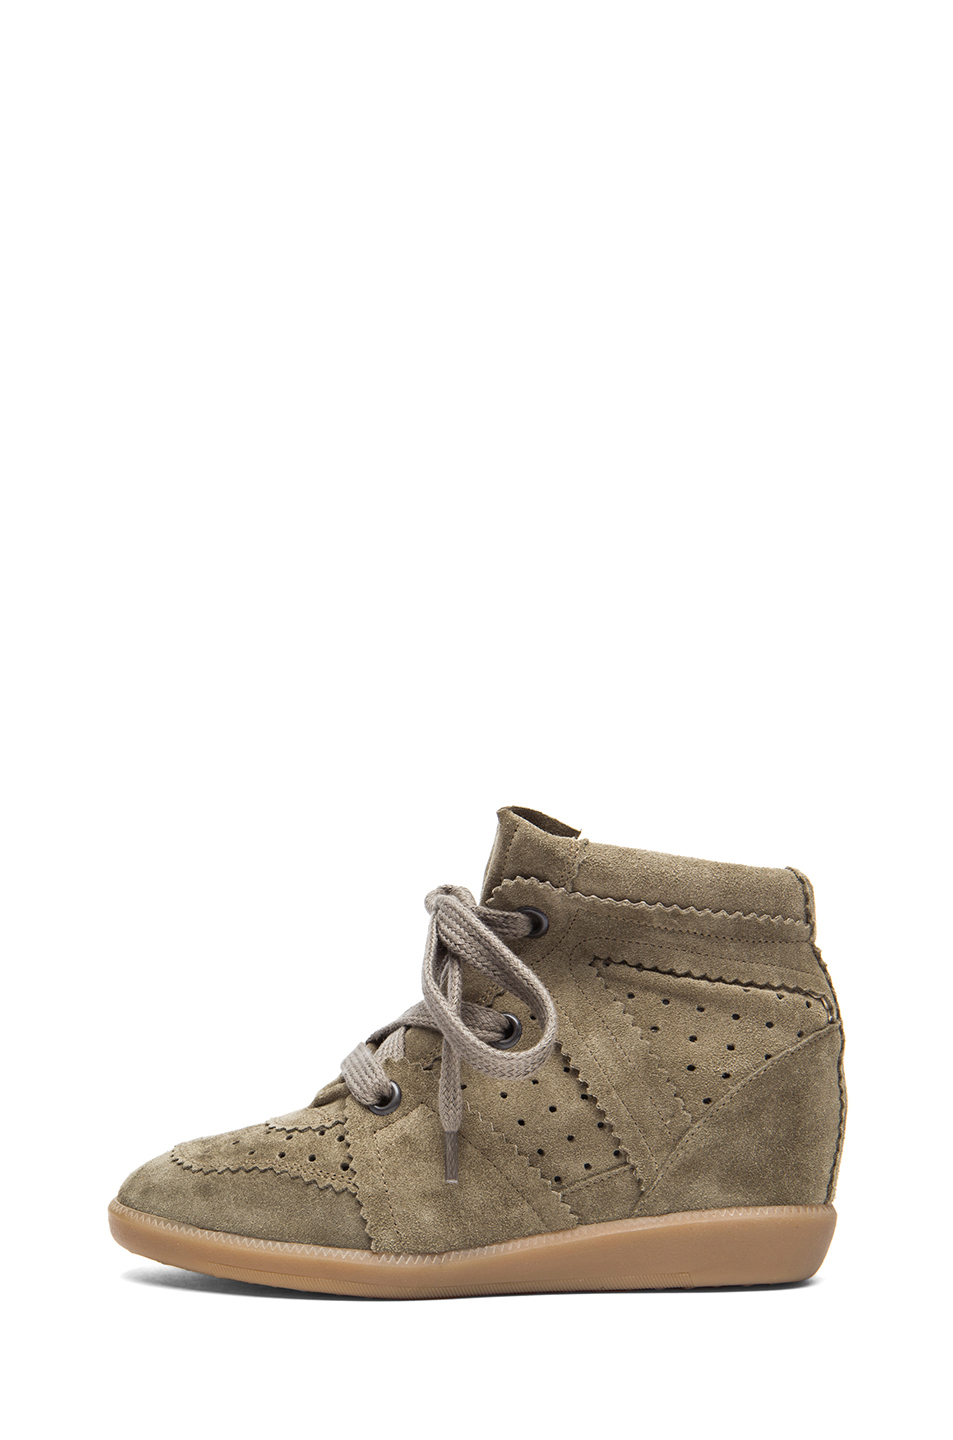 Isabel Marant|Bobby Calfskin Velvet Leather Sneakers in Taupe